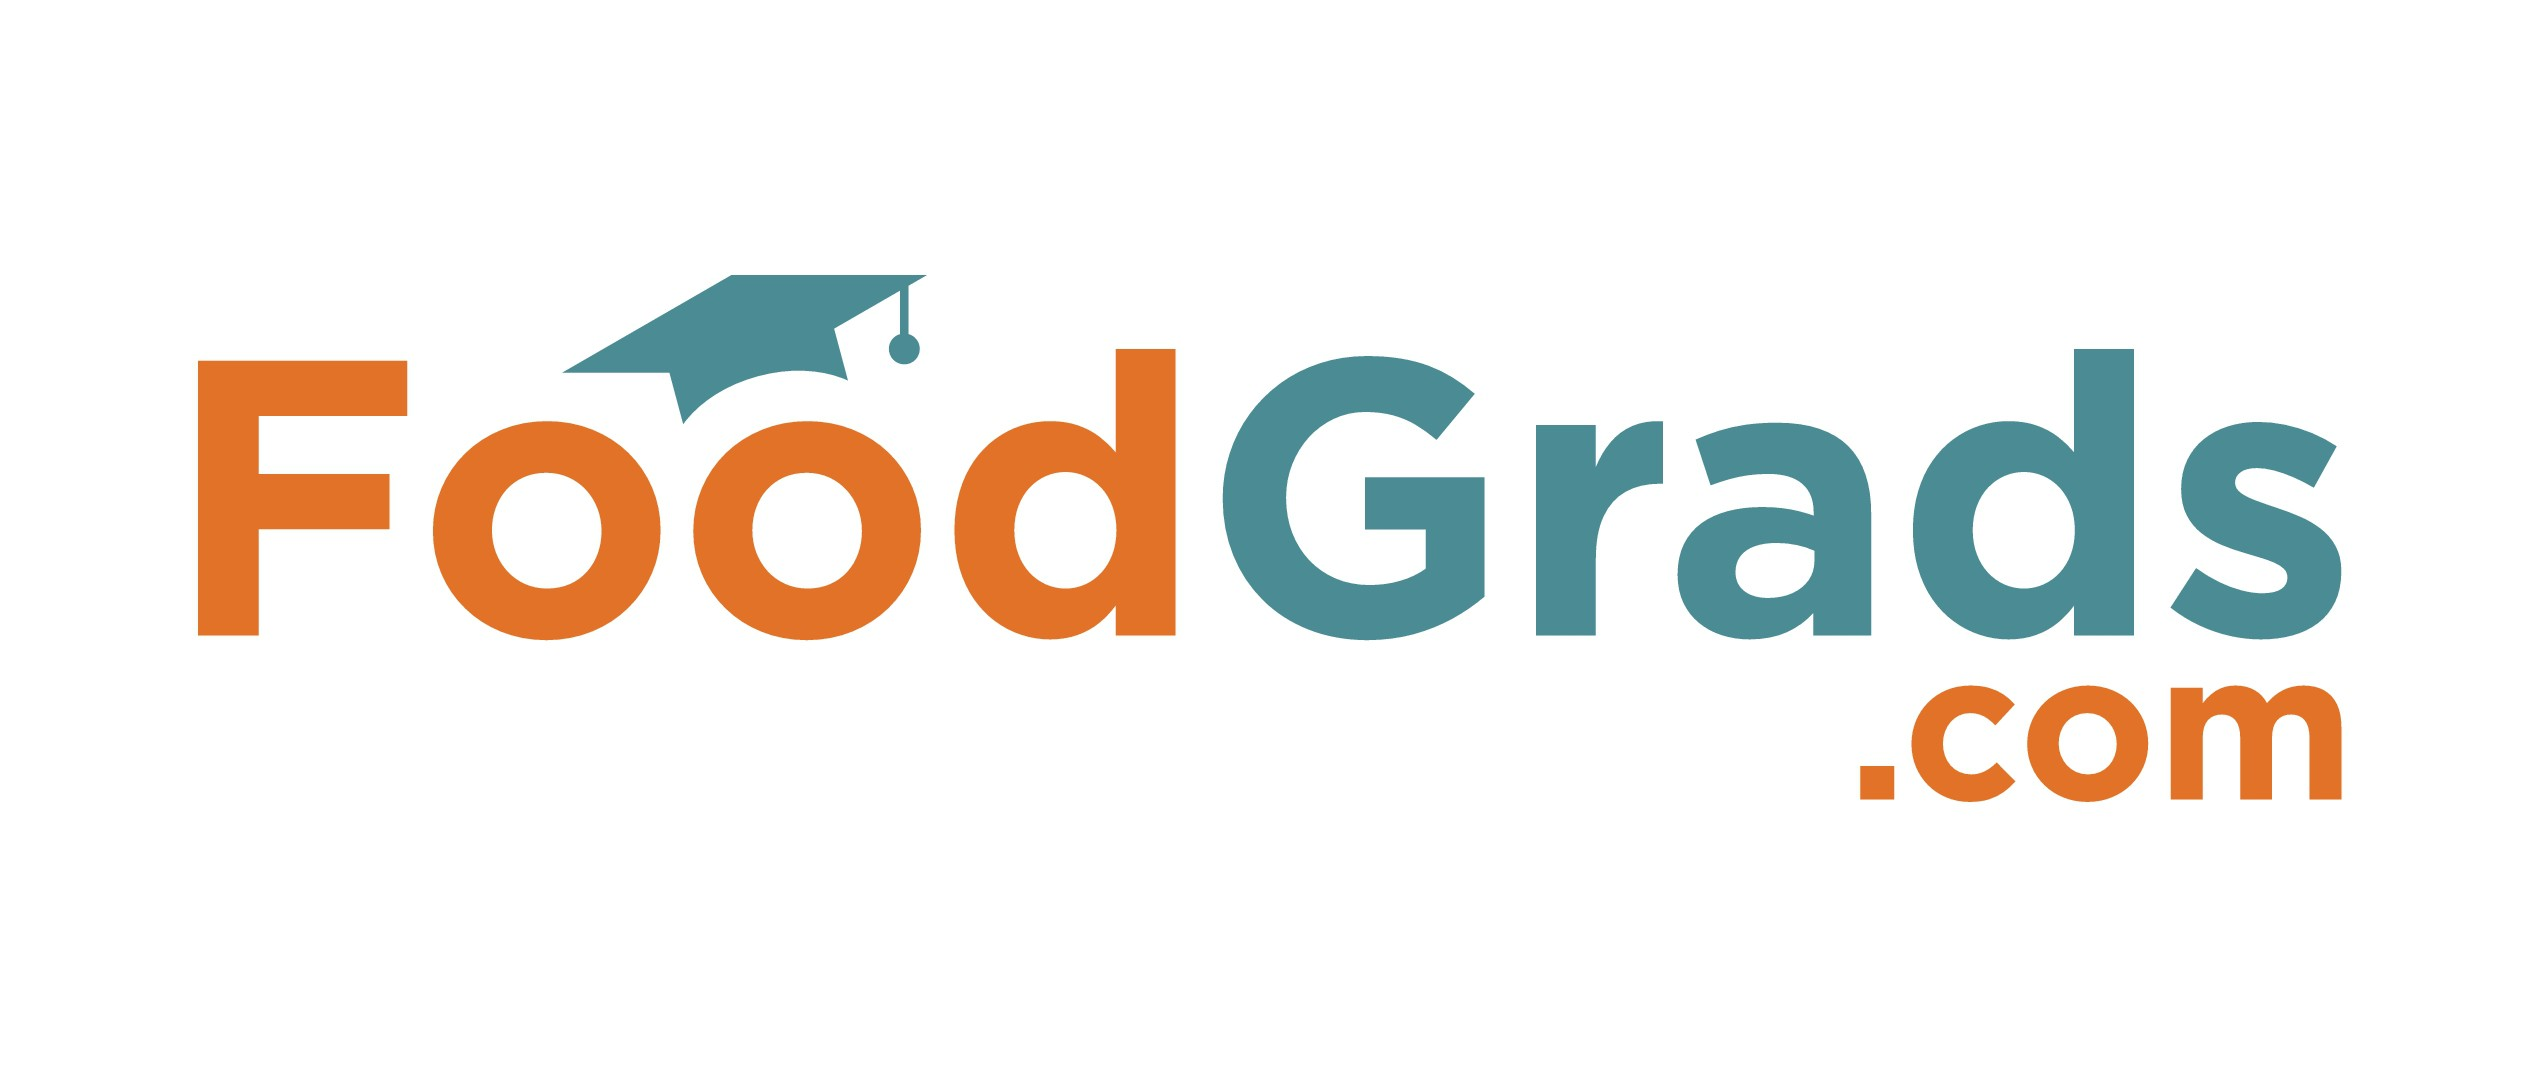 Create a logo for a graduate employment website to attract students & employers in food science & production